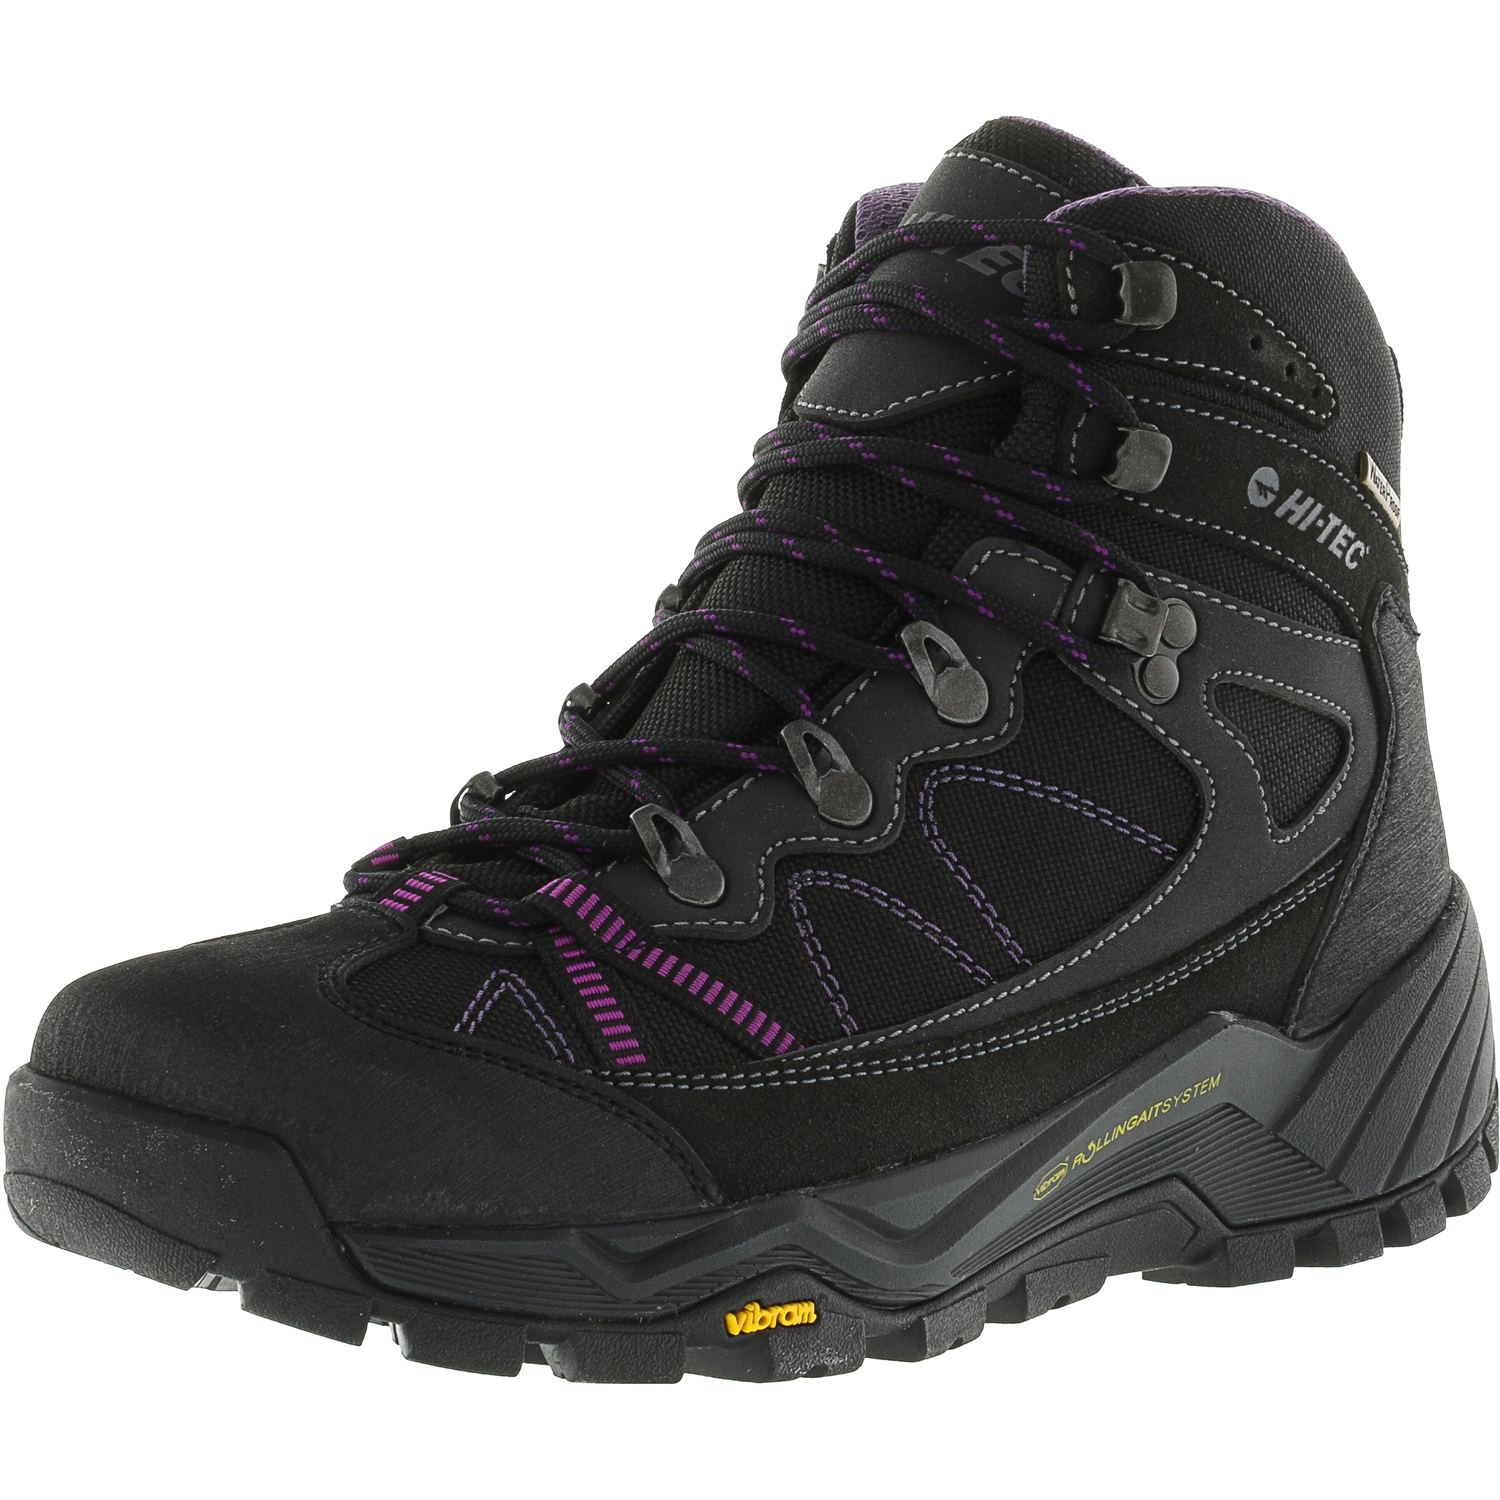 Hi-Tec Women's V-Lite Altitude Pro Lite Rgs Waterproof Charcoal   Orchid Ankle-High Fabric Boot 9.5M by Hi-Tec